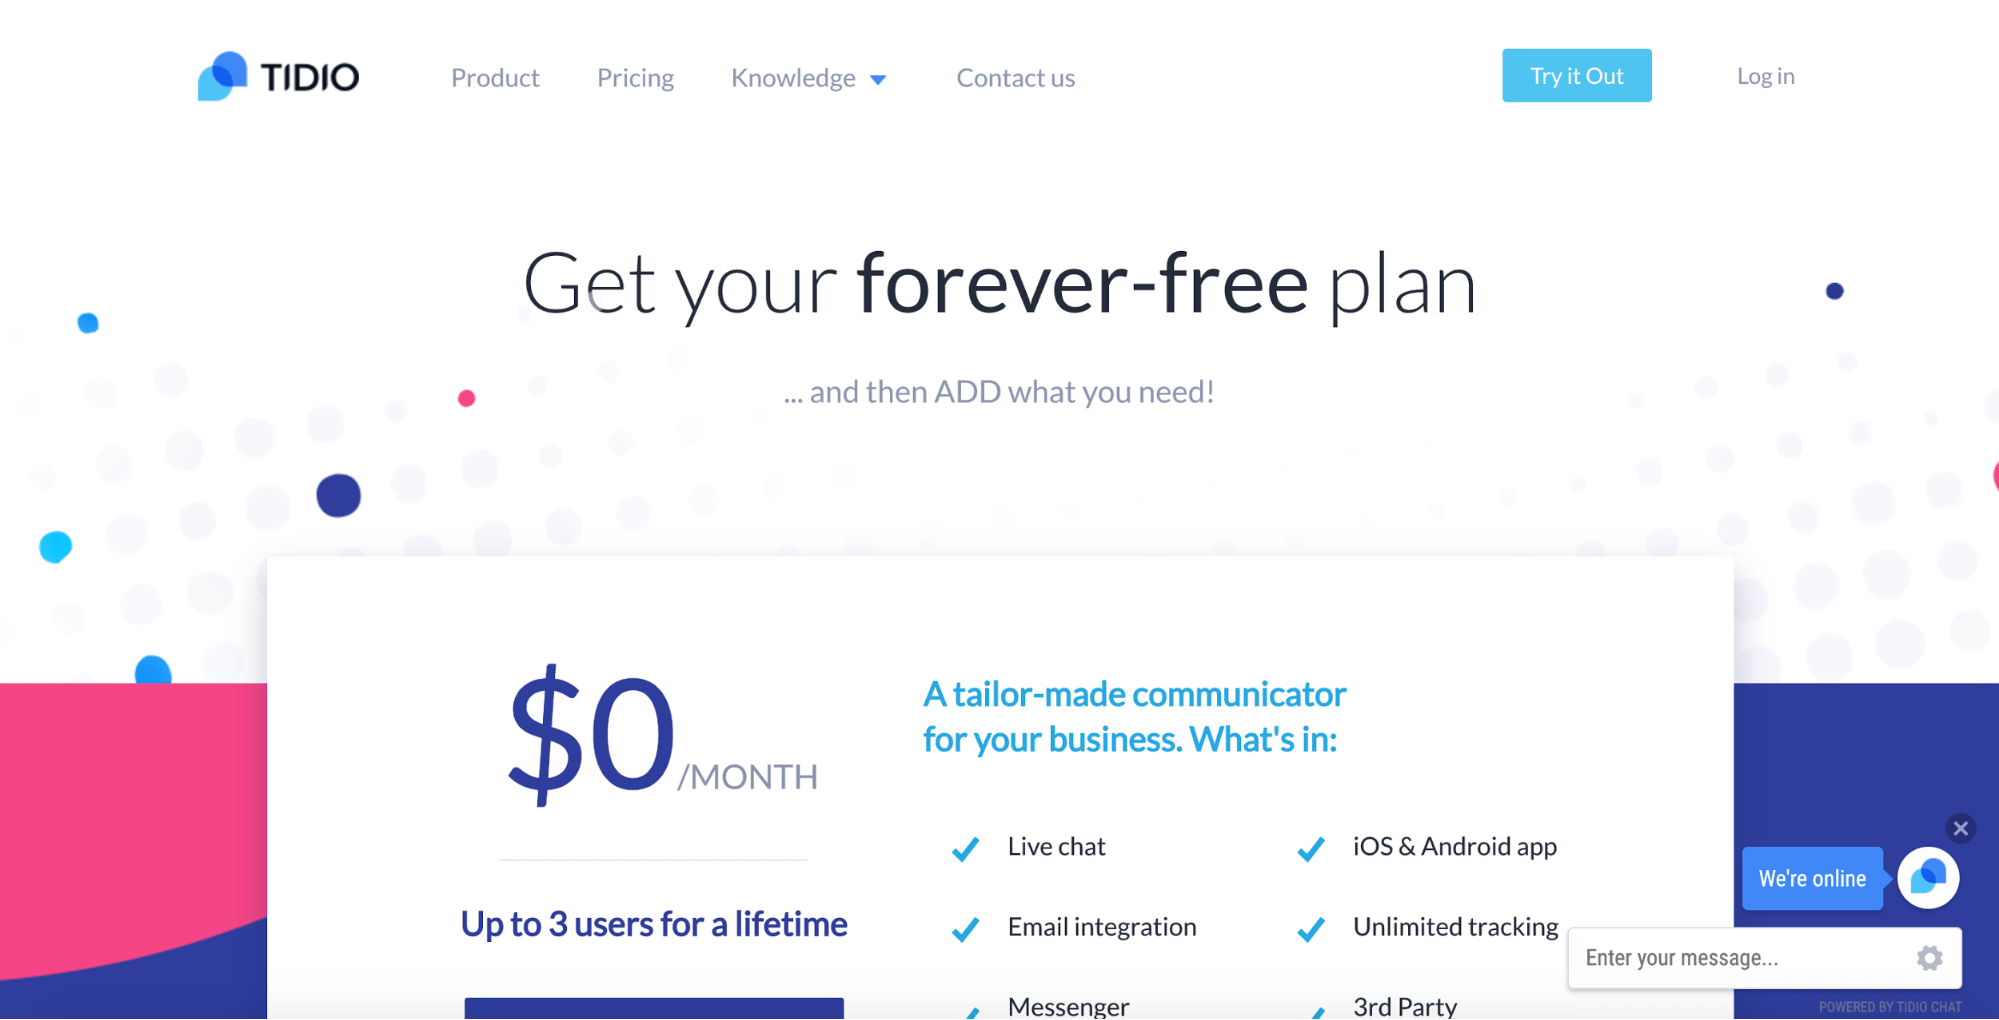 Tidio pricing and plans